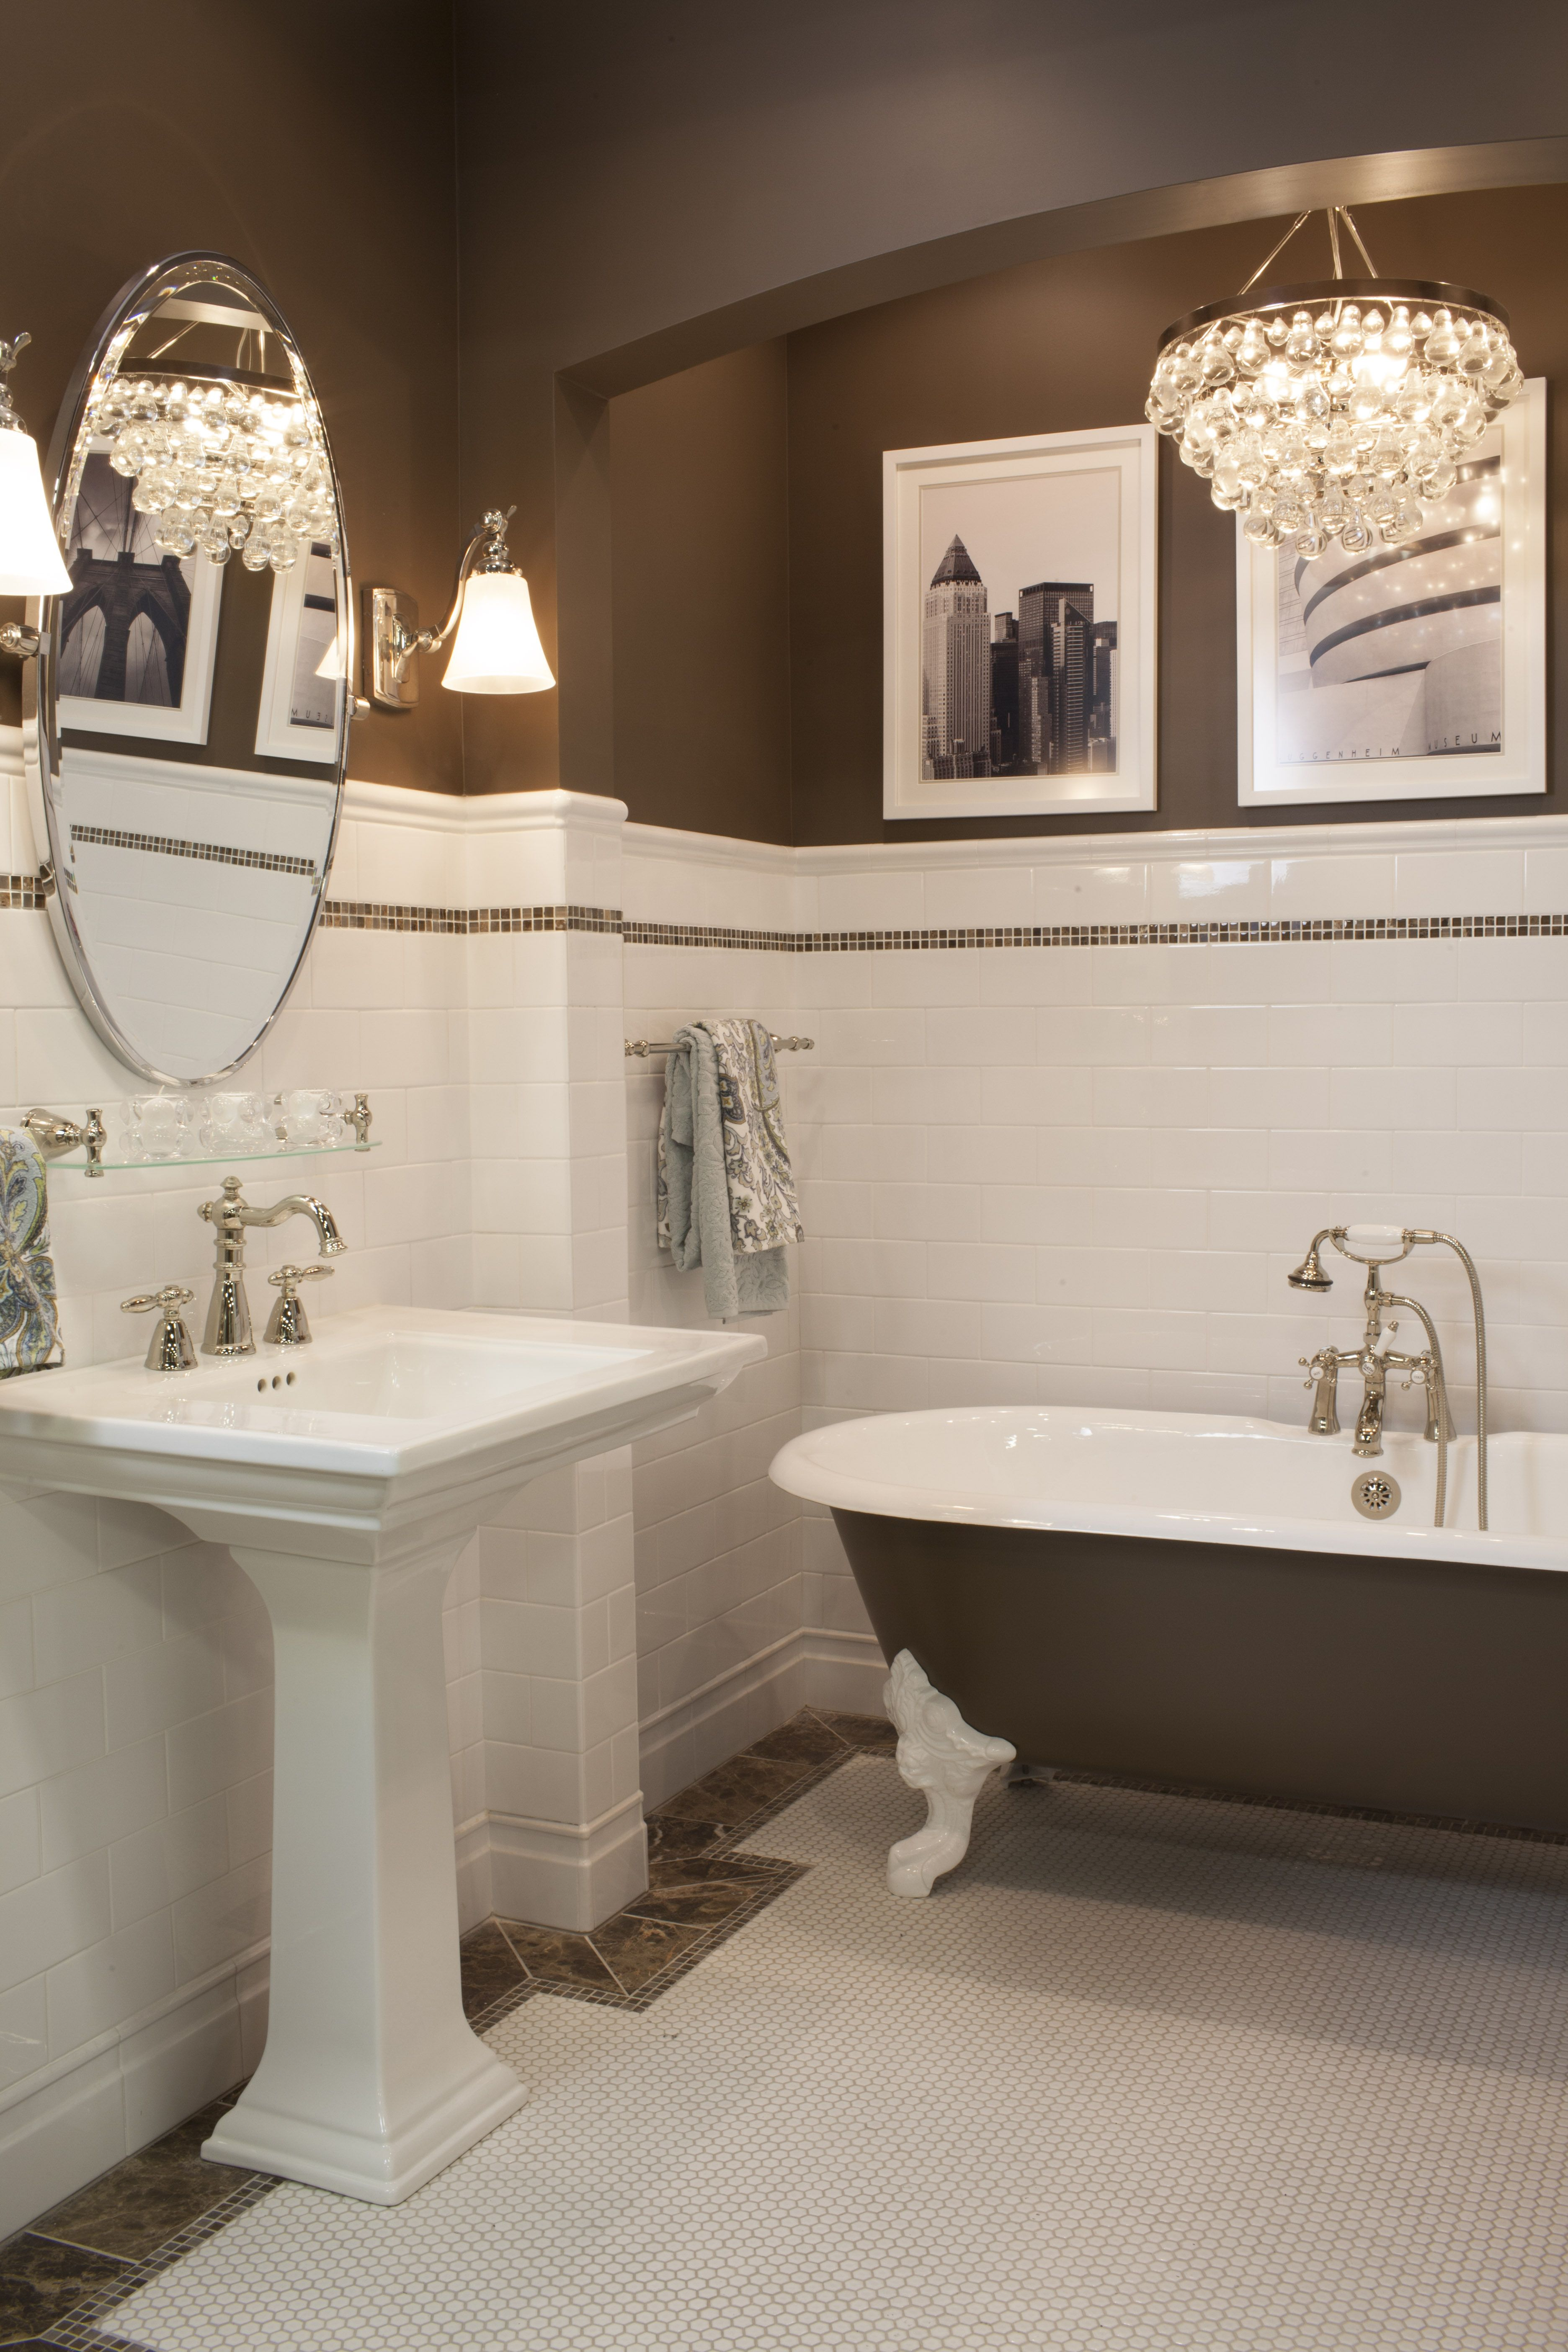 Ceramic subway tile wainscoting and hex mosaic is always a classic ...